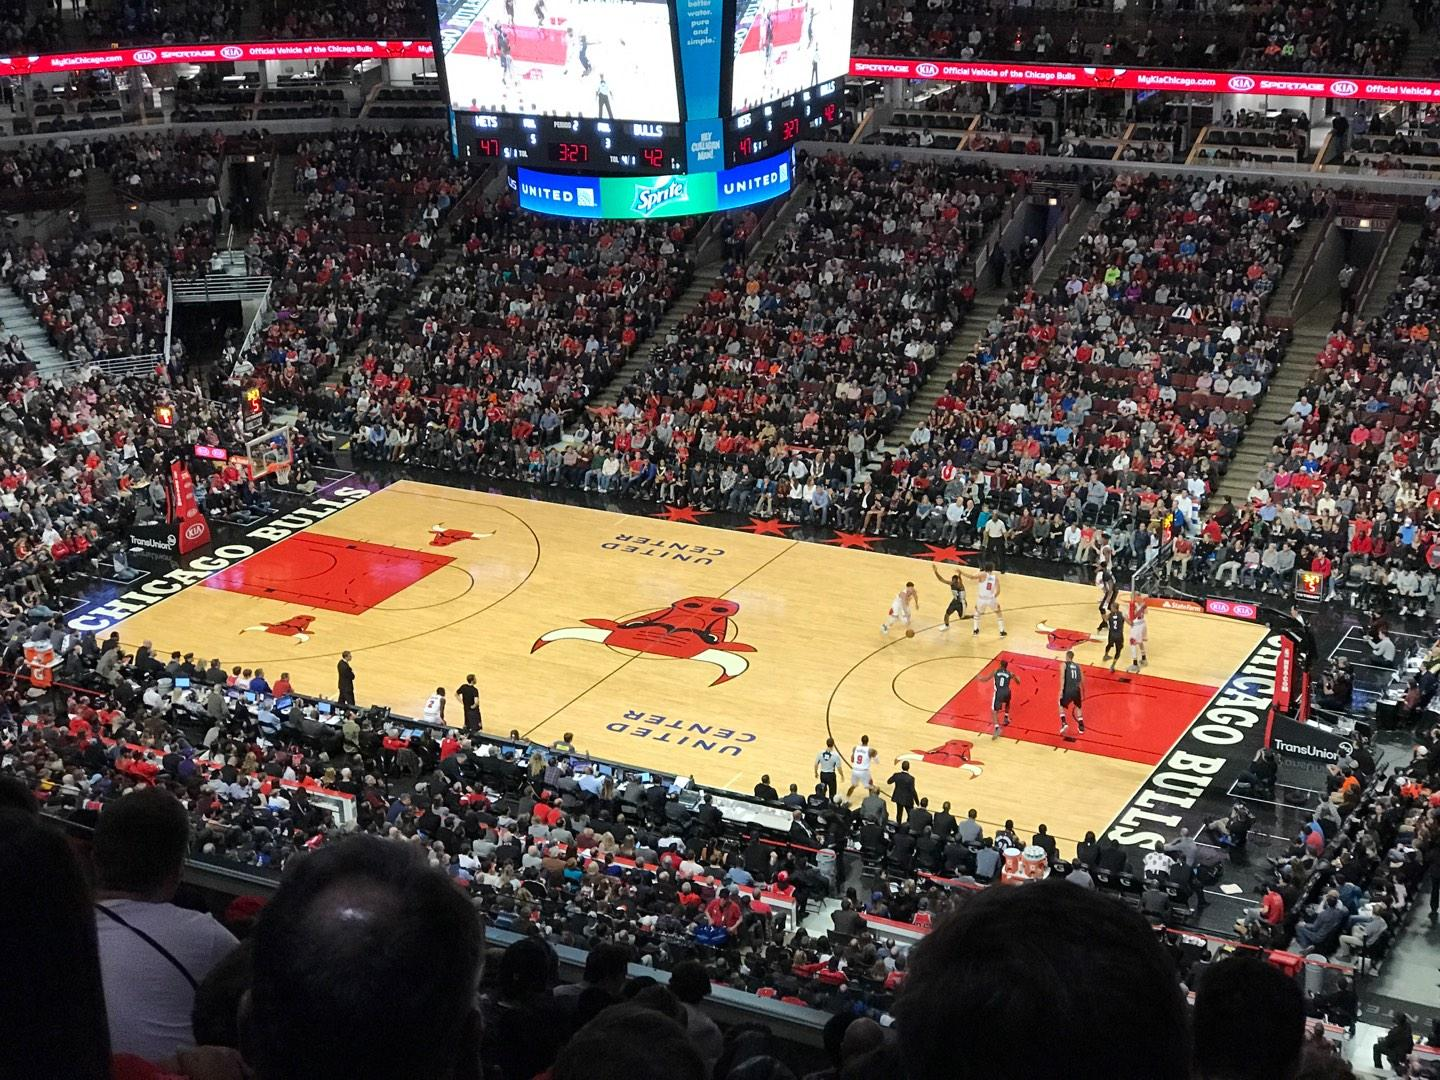 United Center Section 332 Row 12 Seat 7